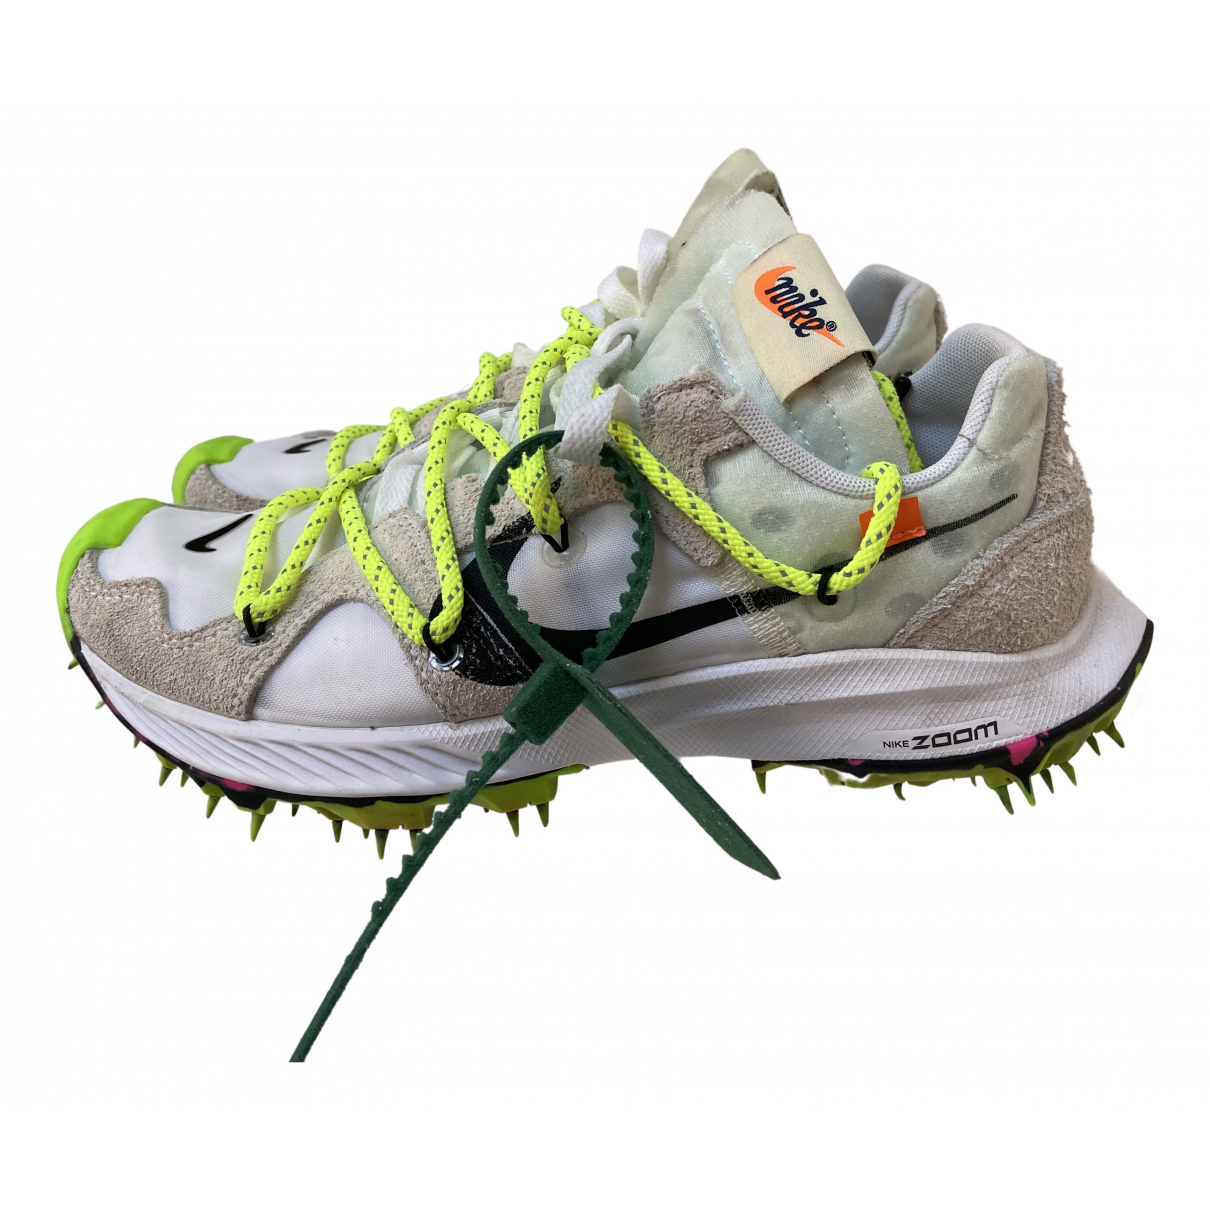 Nike X Off-white Zoom Terra Kiger 5 White Cloth Trainers for Women 4 UK